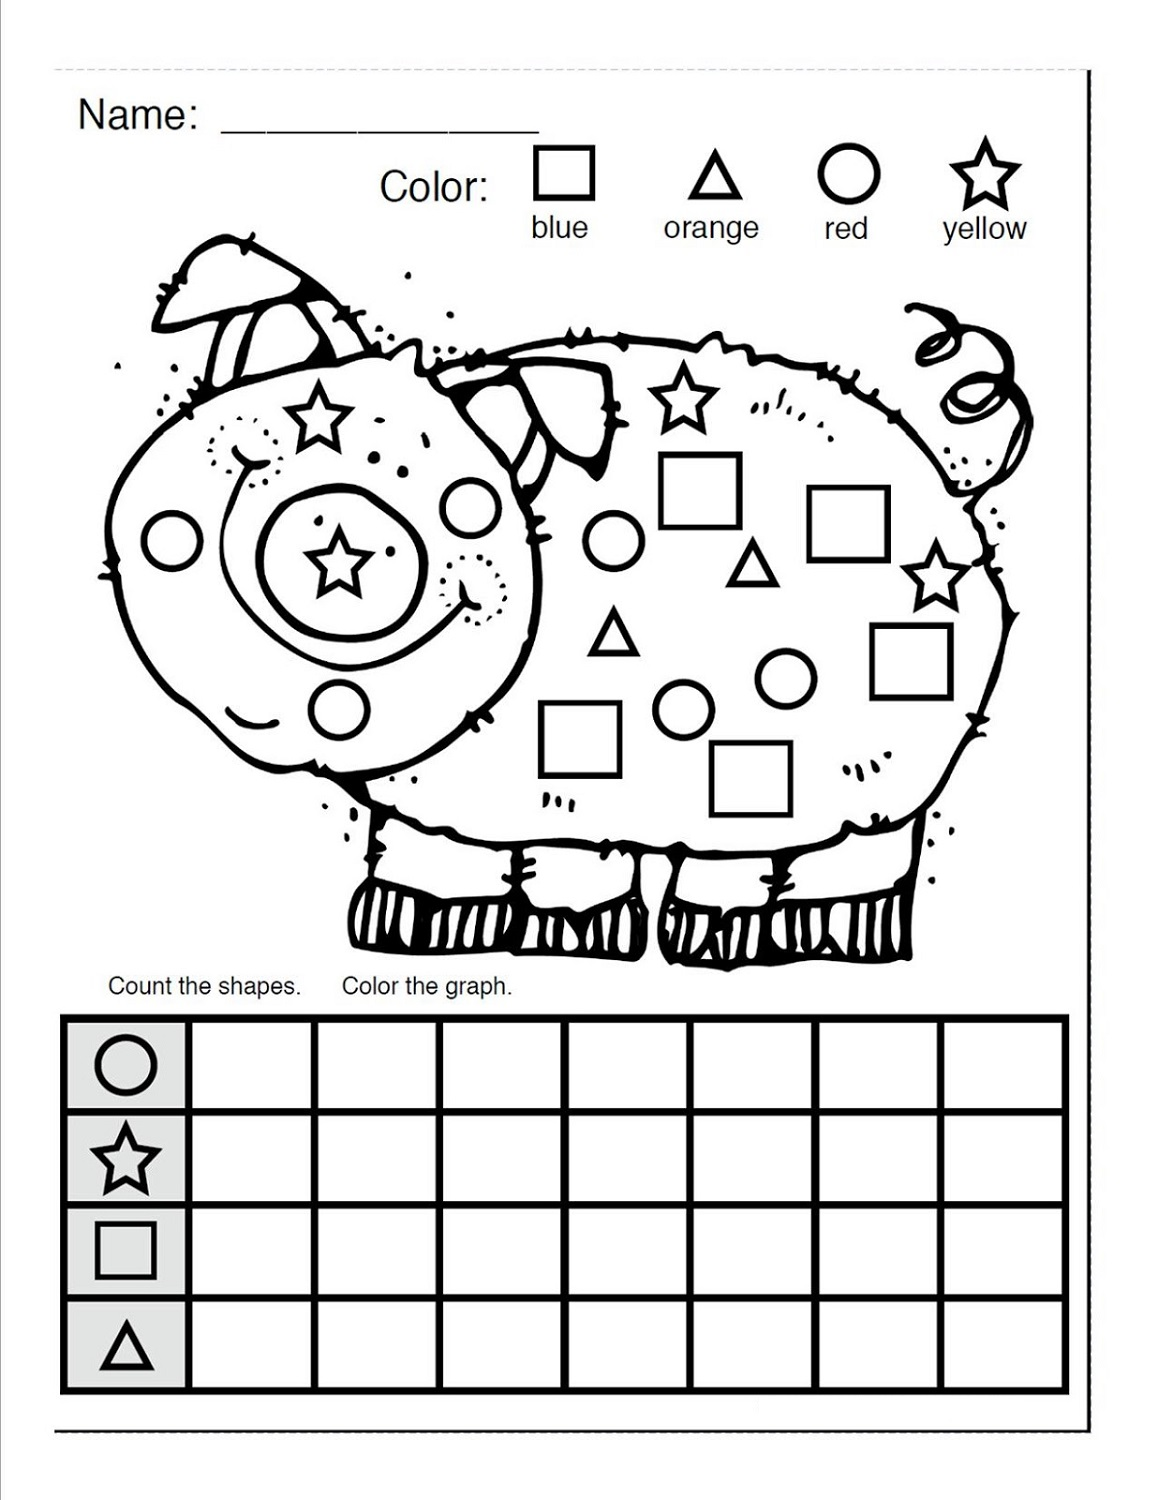 Worksheet For Grade 1 Coloring